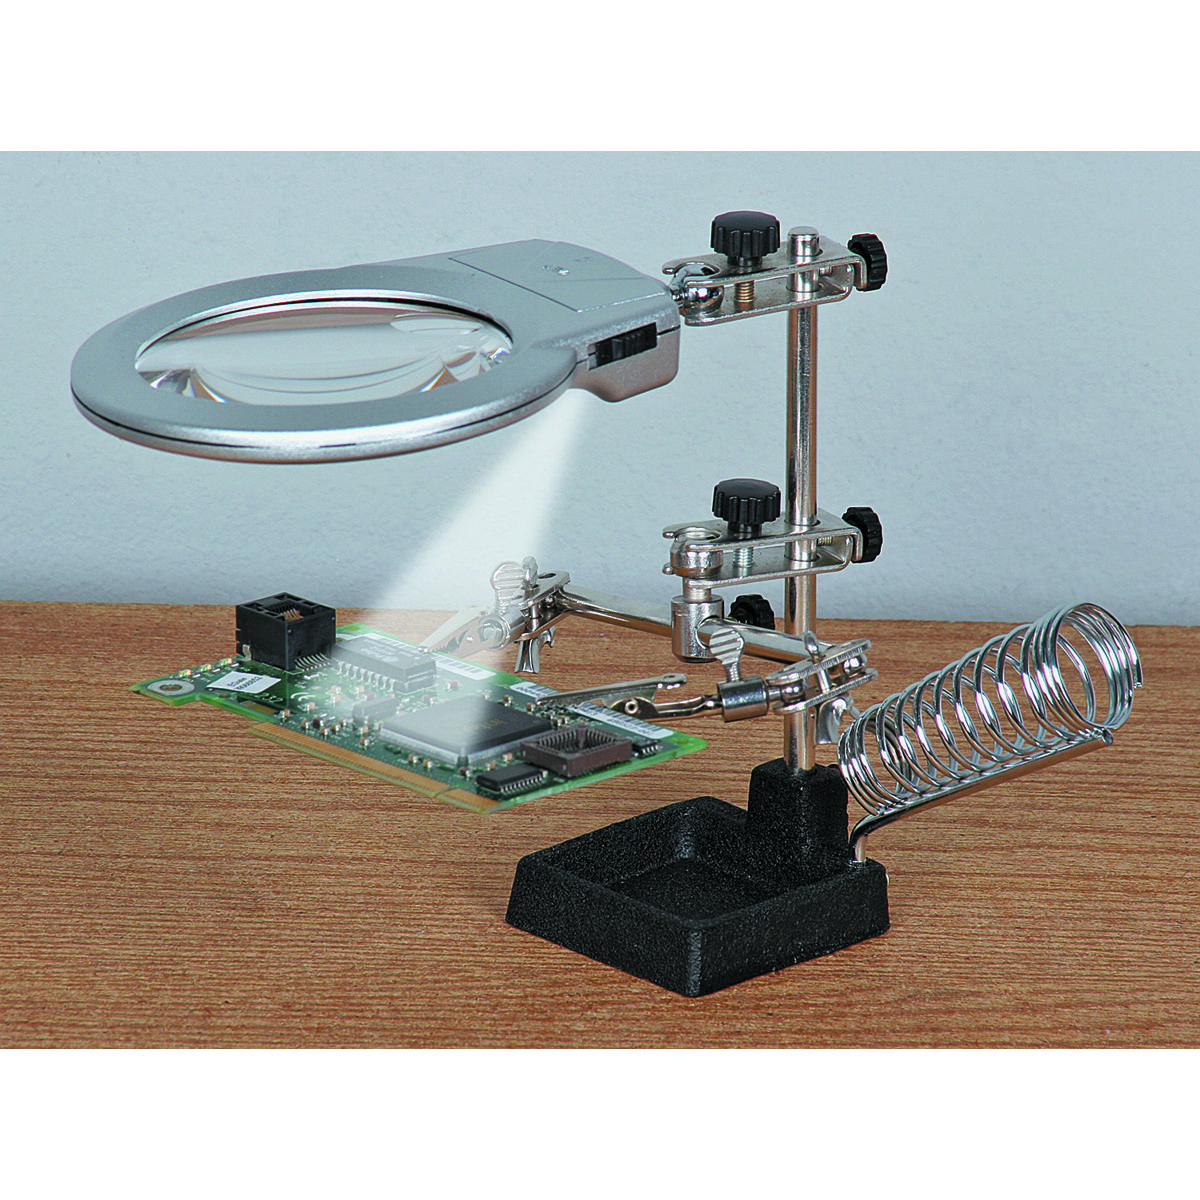 Jumbo Helping Hands With Led Lights Led Lights Magnifying Glass Magnifier